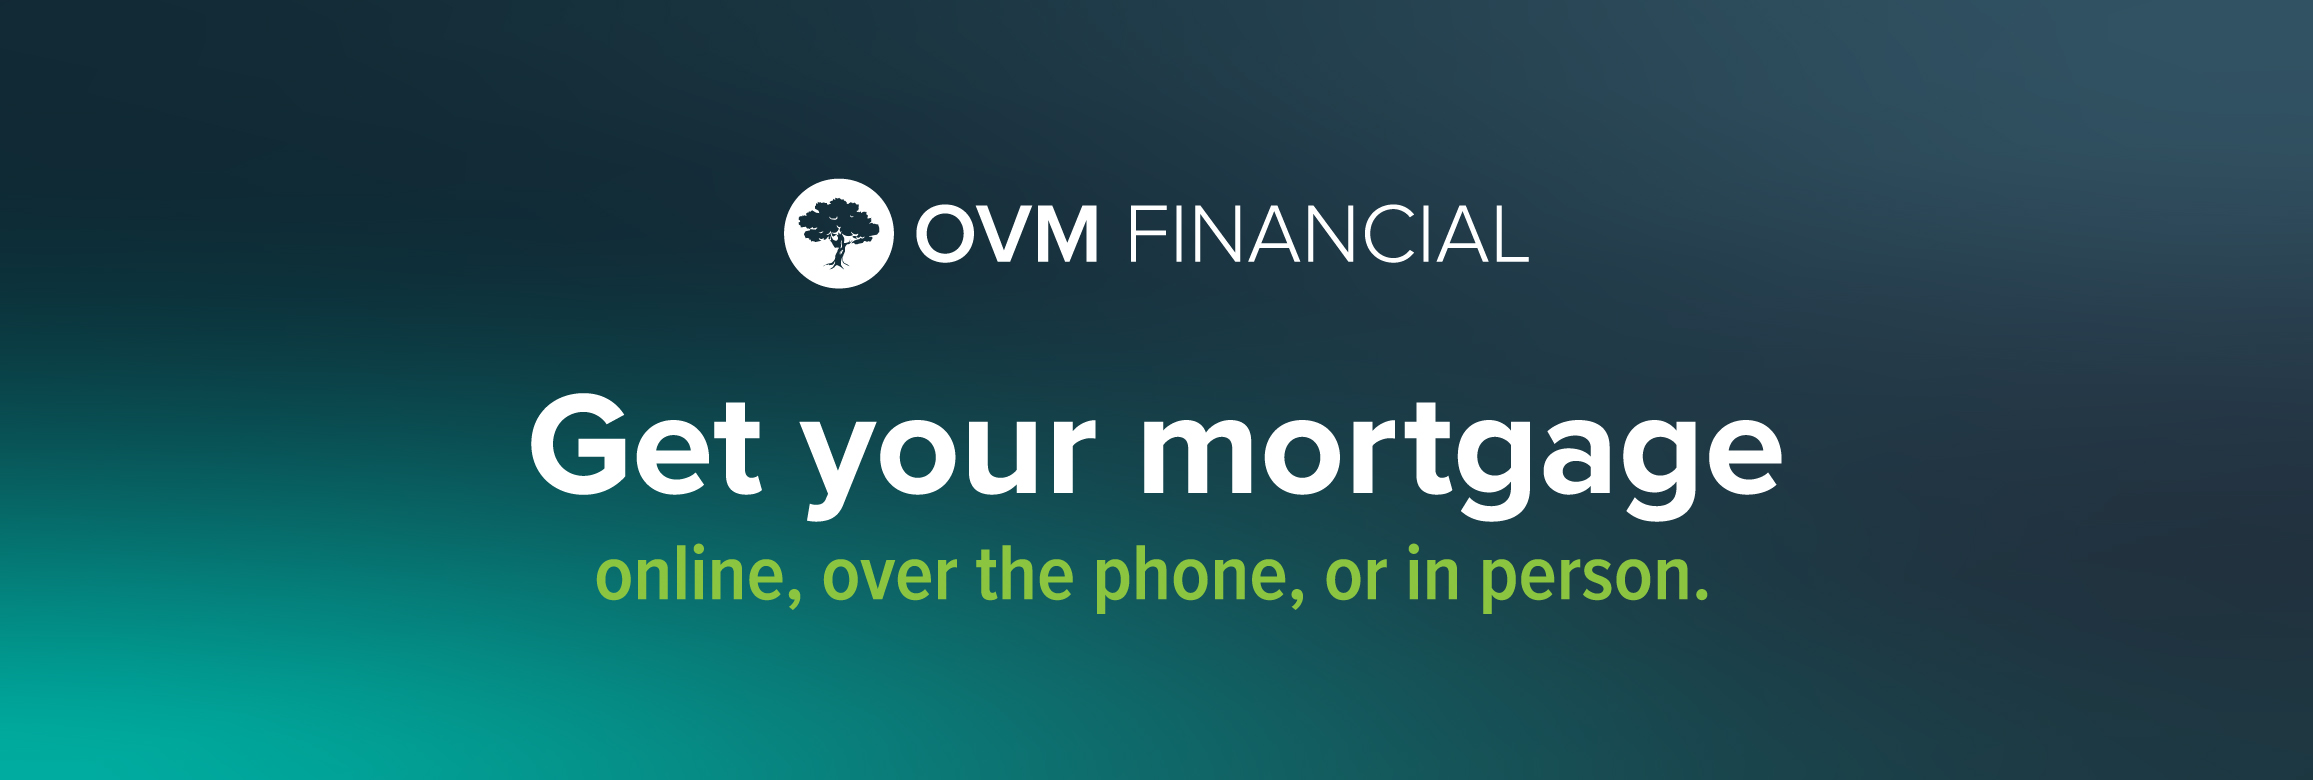 OVM Financial, Inc. reviews | 5040 Corporate Woods Dr, Suite 100 - Virginia Beach VA